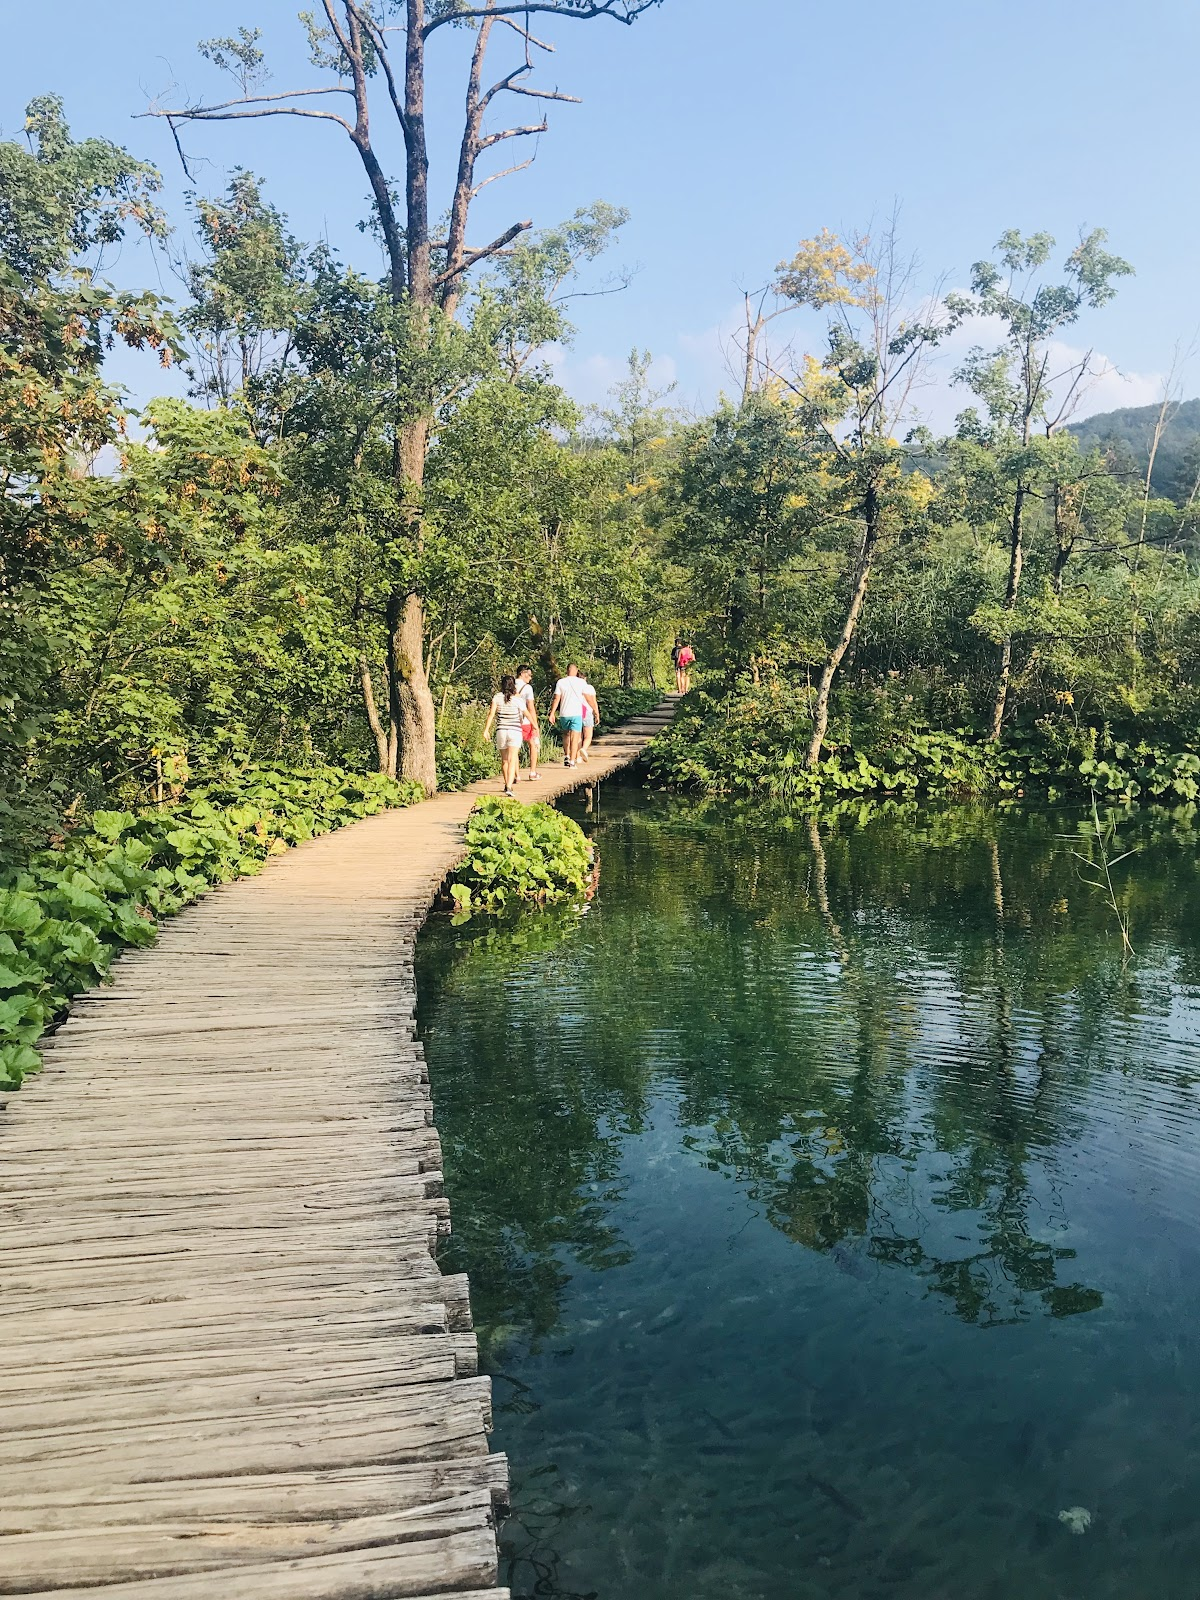 plitvice lakes national park, small wooden path with tourists on top of lakes and green forest. Natural beauty in Croatia.